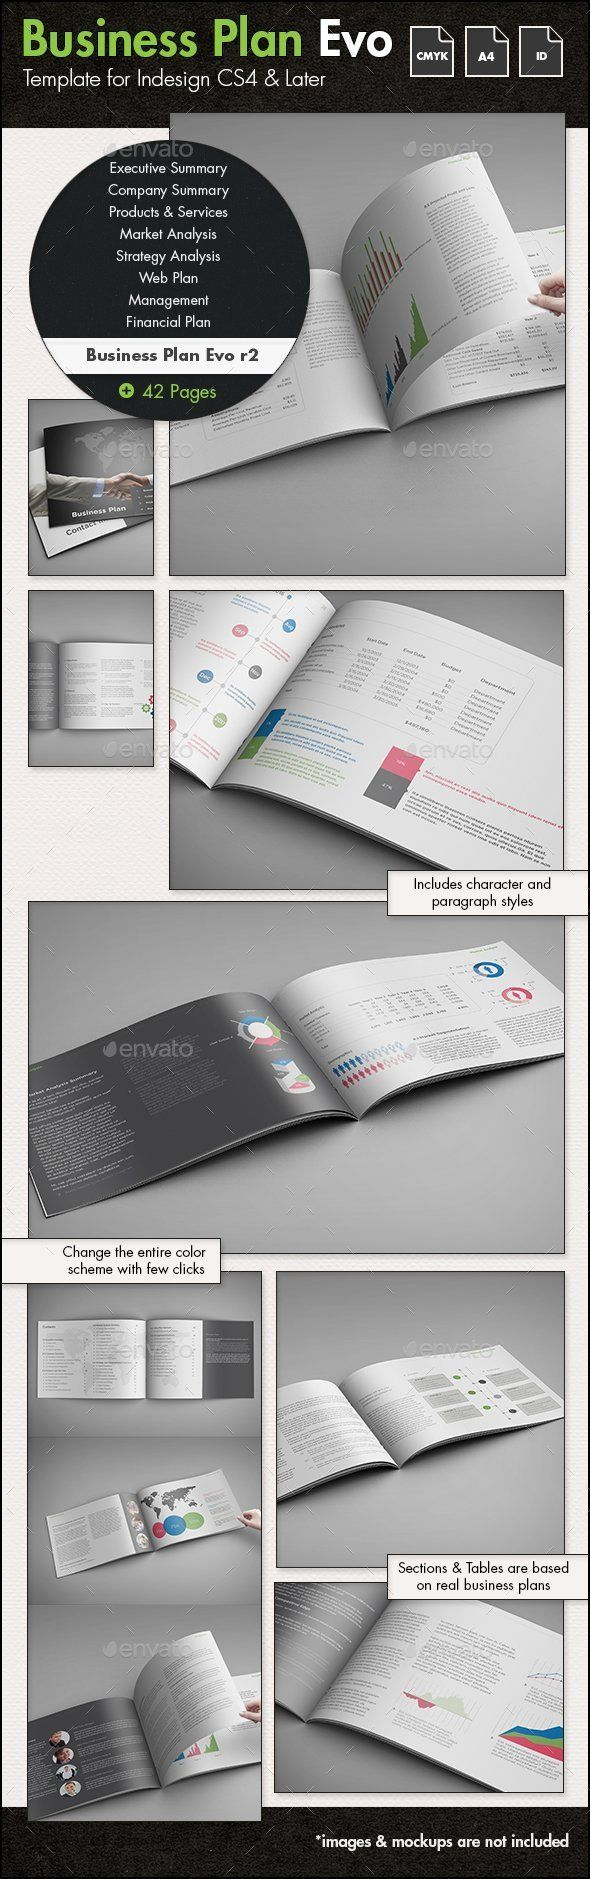 Business Plan Evolved r2 - A4 Landscape Template